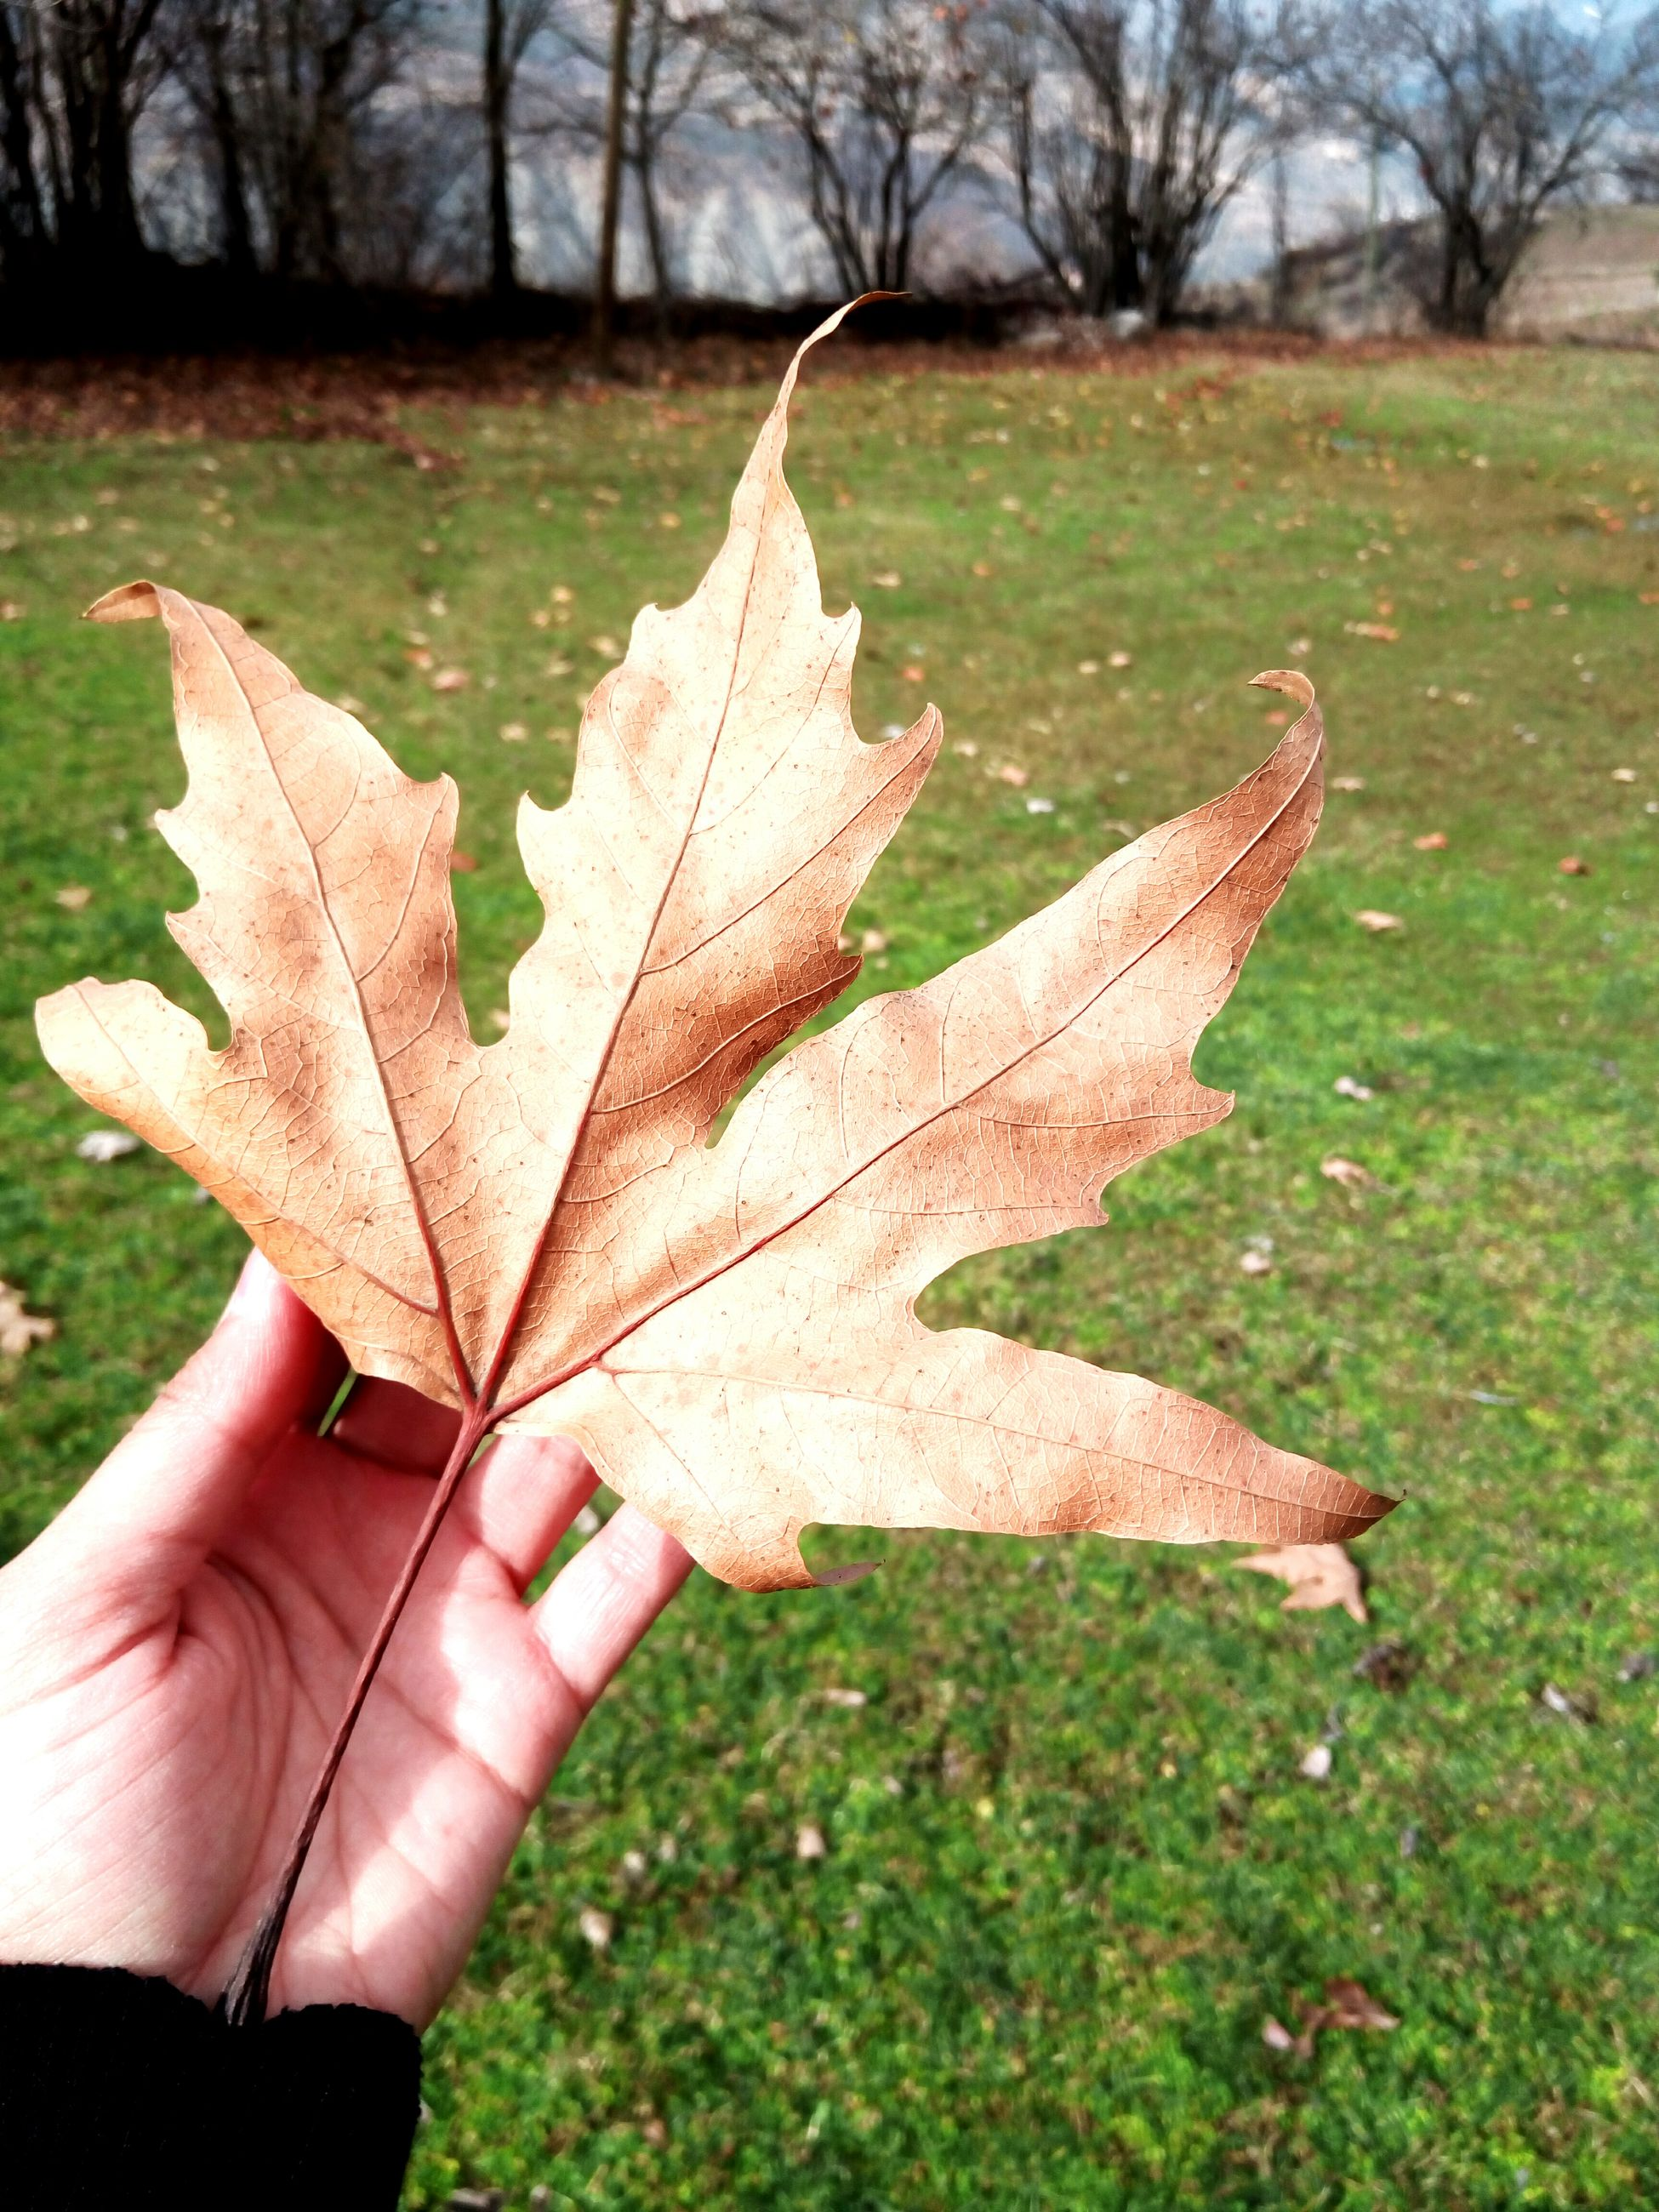 leaf, autumn, focus on foreground, outdoors, day, human hand, nature, maple, change, maple leaf, close-up, one person, human body part, grass, tree, fragility, people